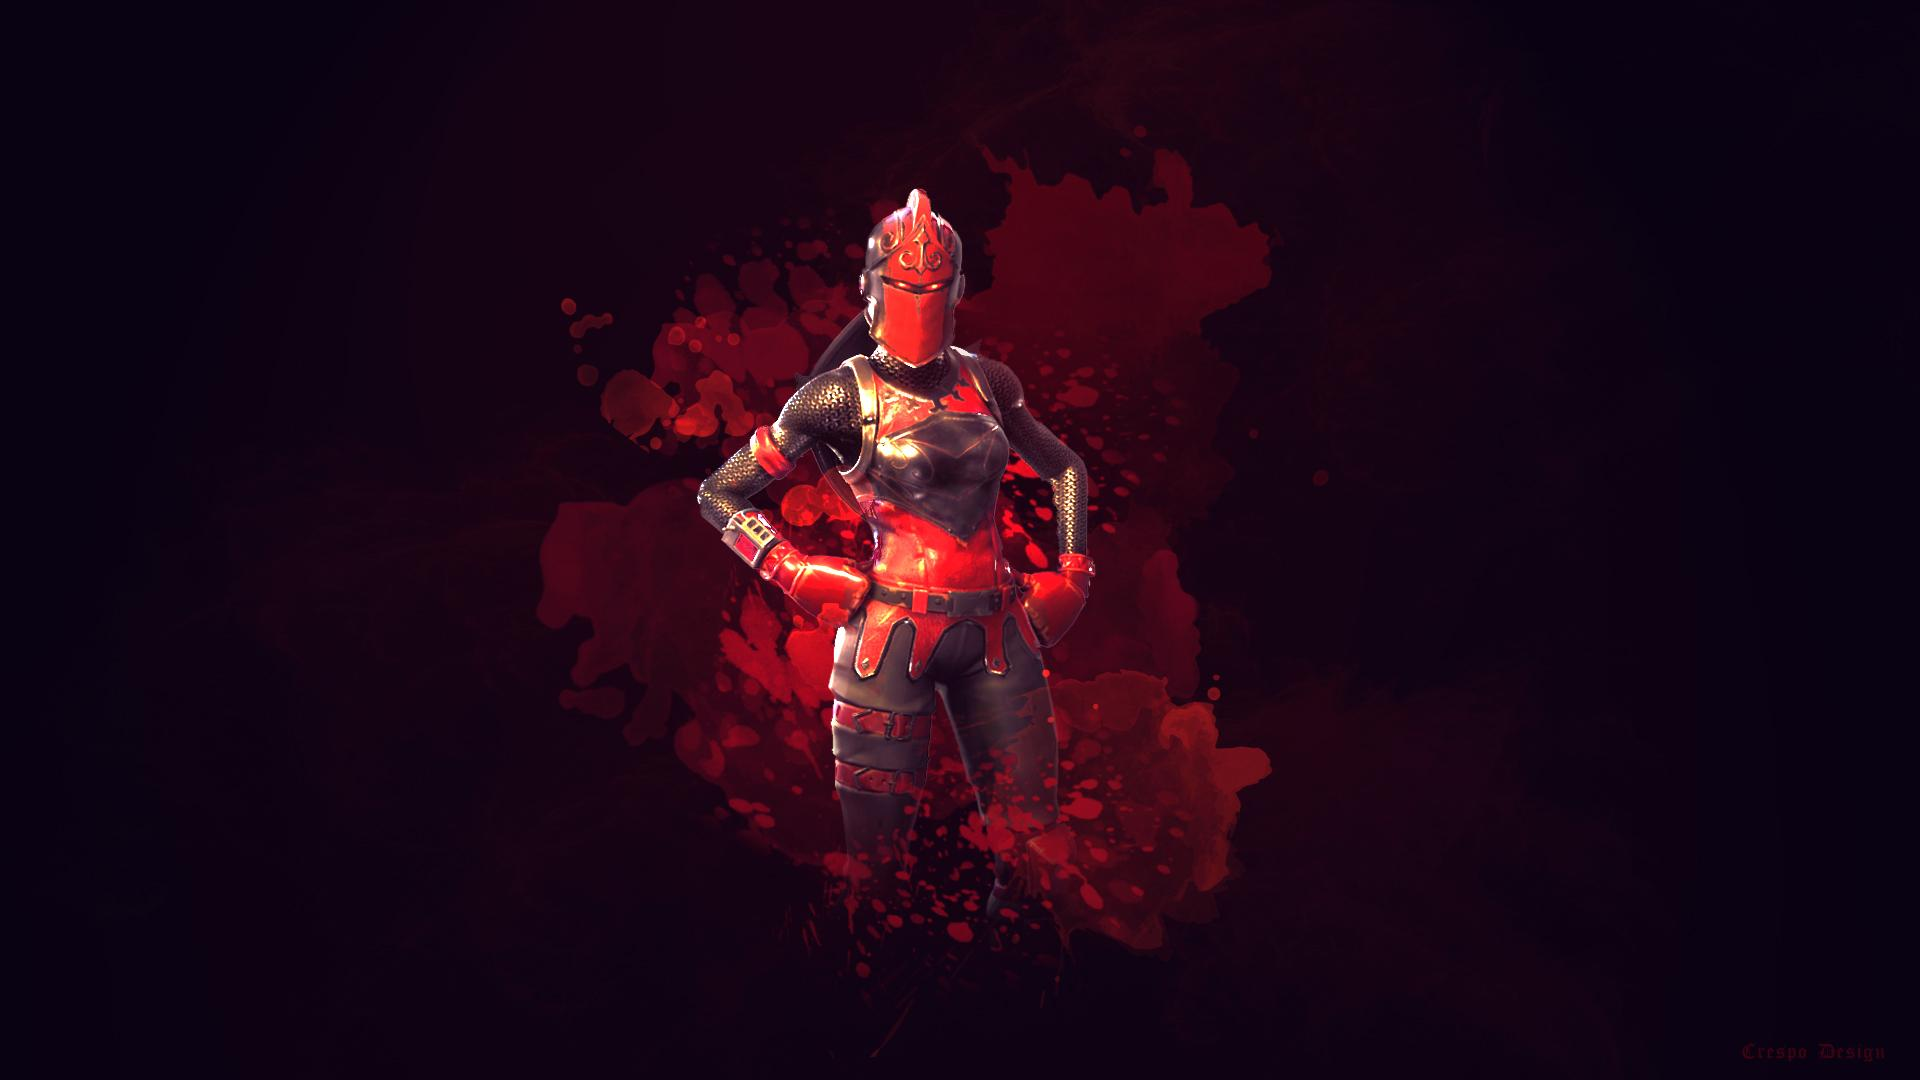 Fortnite Skin Wallpapers FortNiteBR 1920x1080